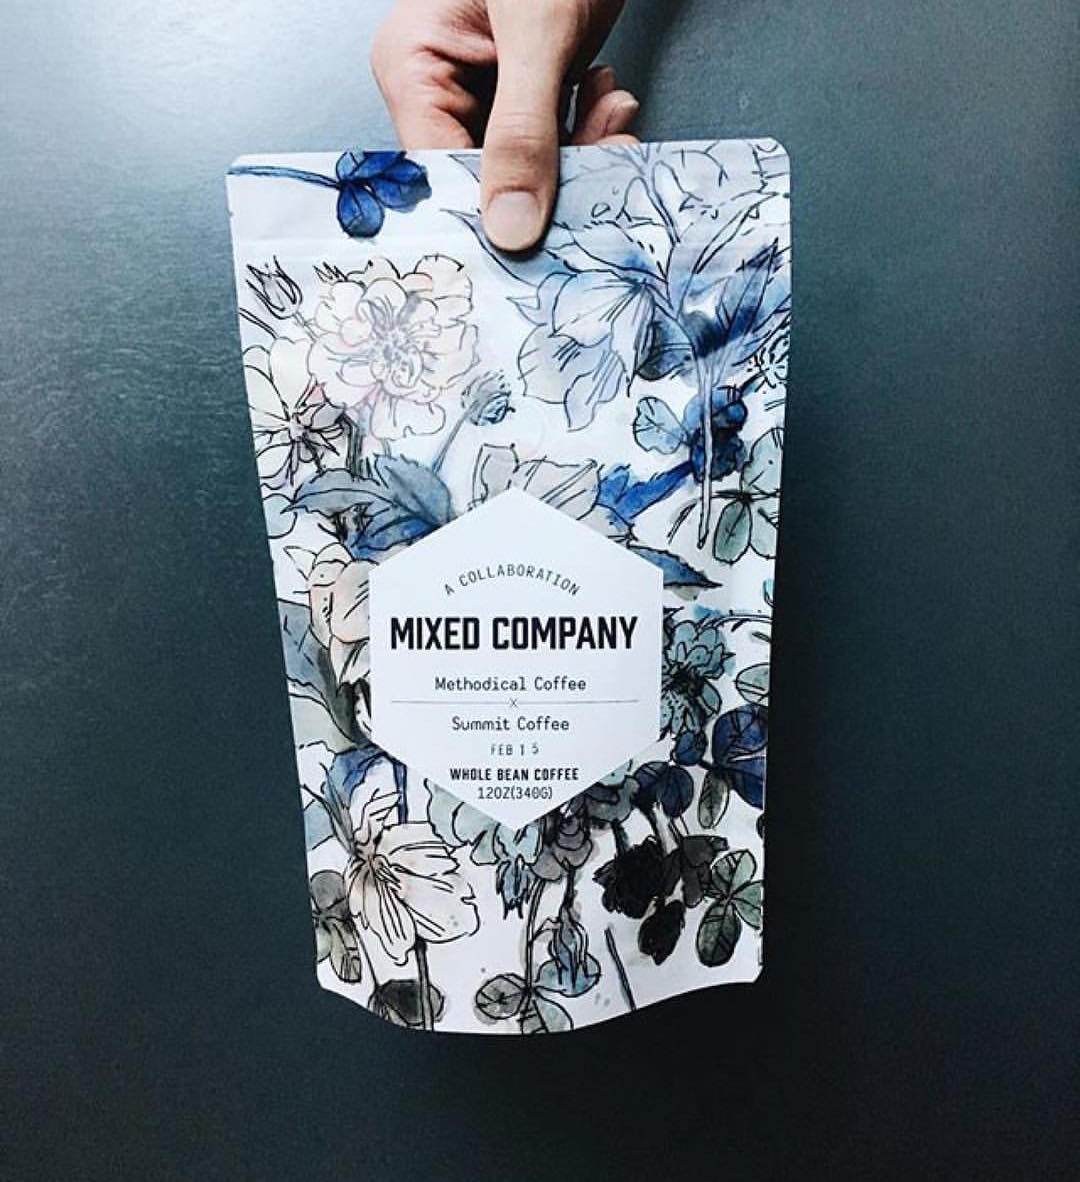 mixed company coffee